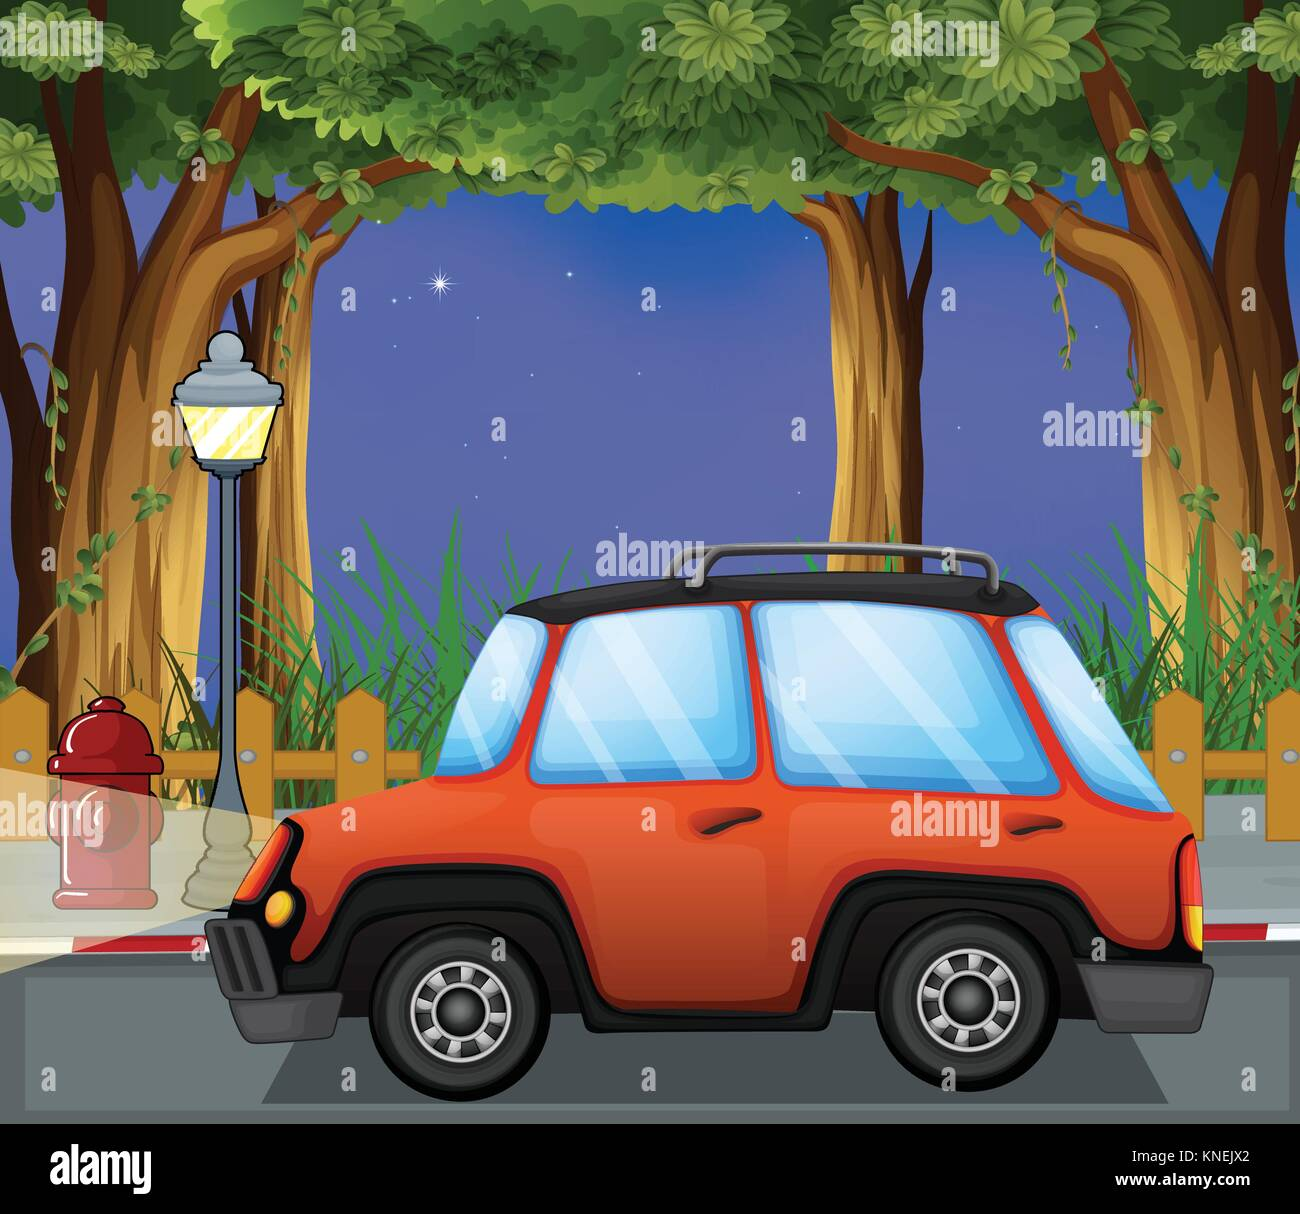 Illustration of a car in the street - Stock Vector